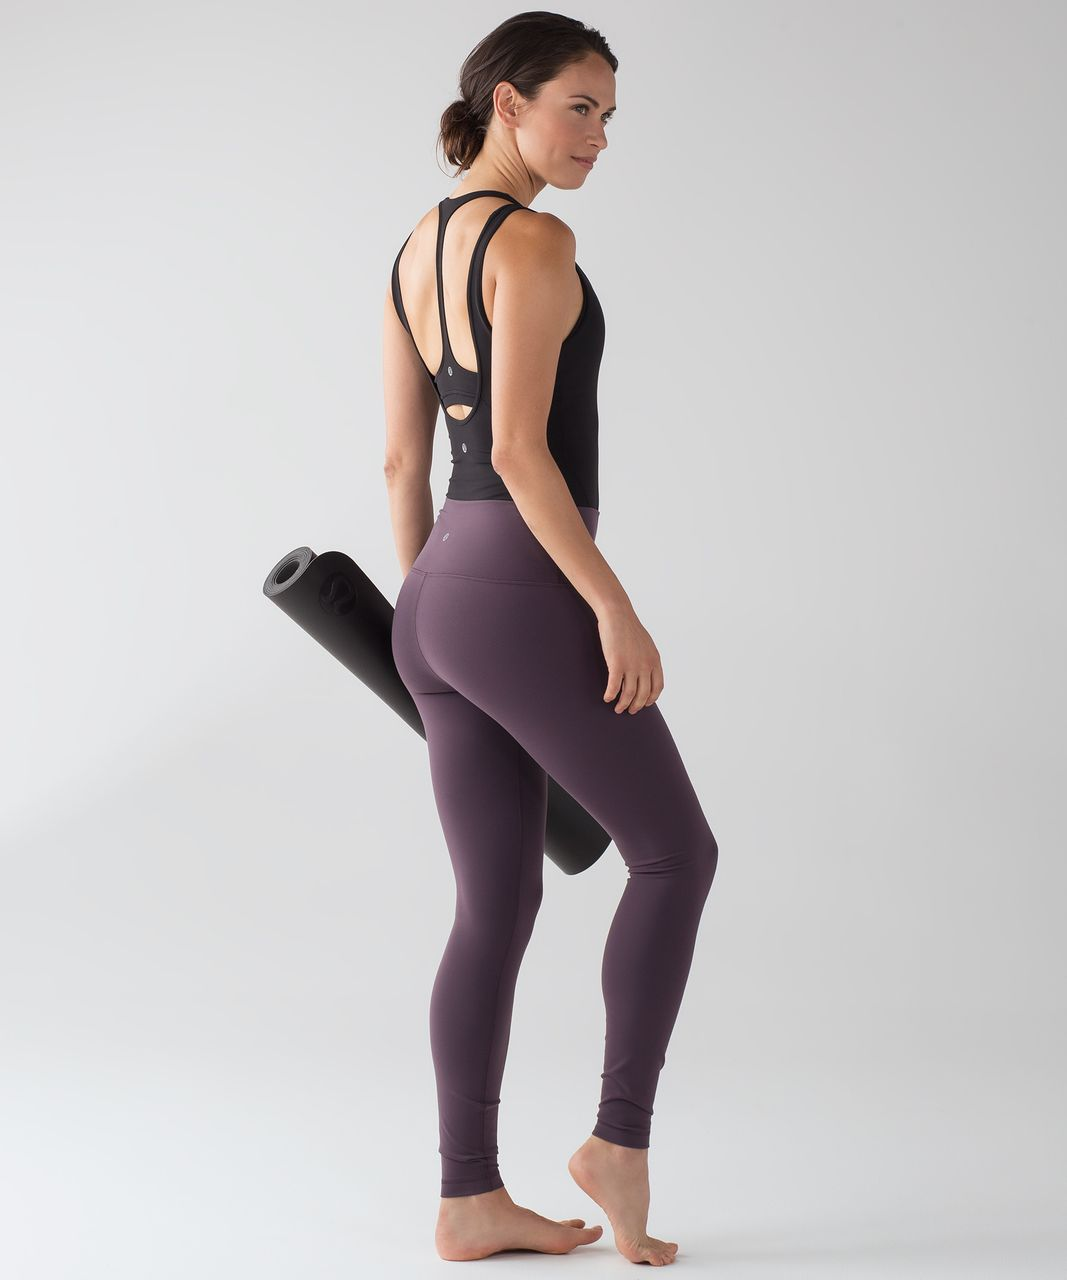 Lululemon Arise Bodysuit Black Lulu Fanatics